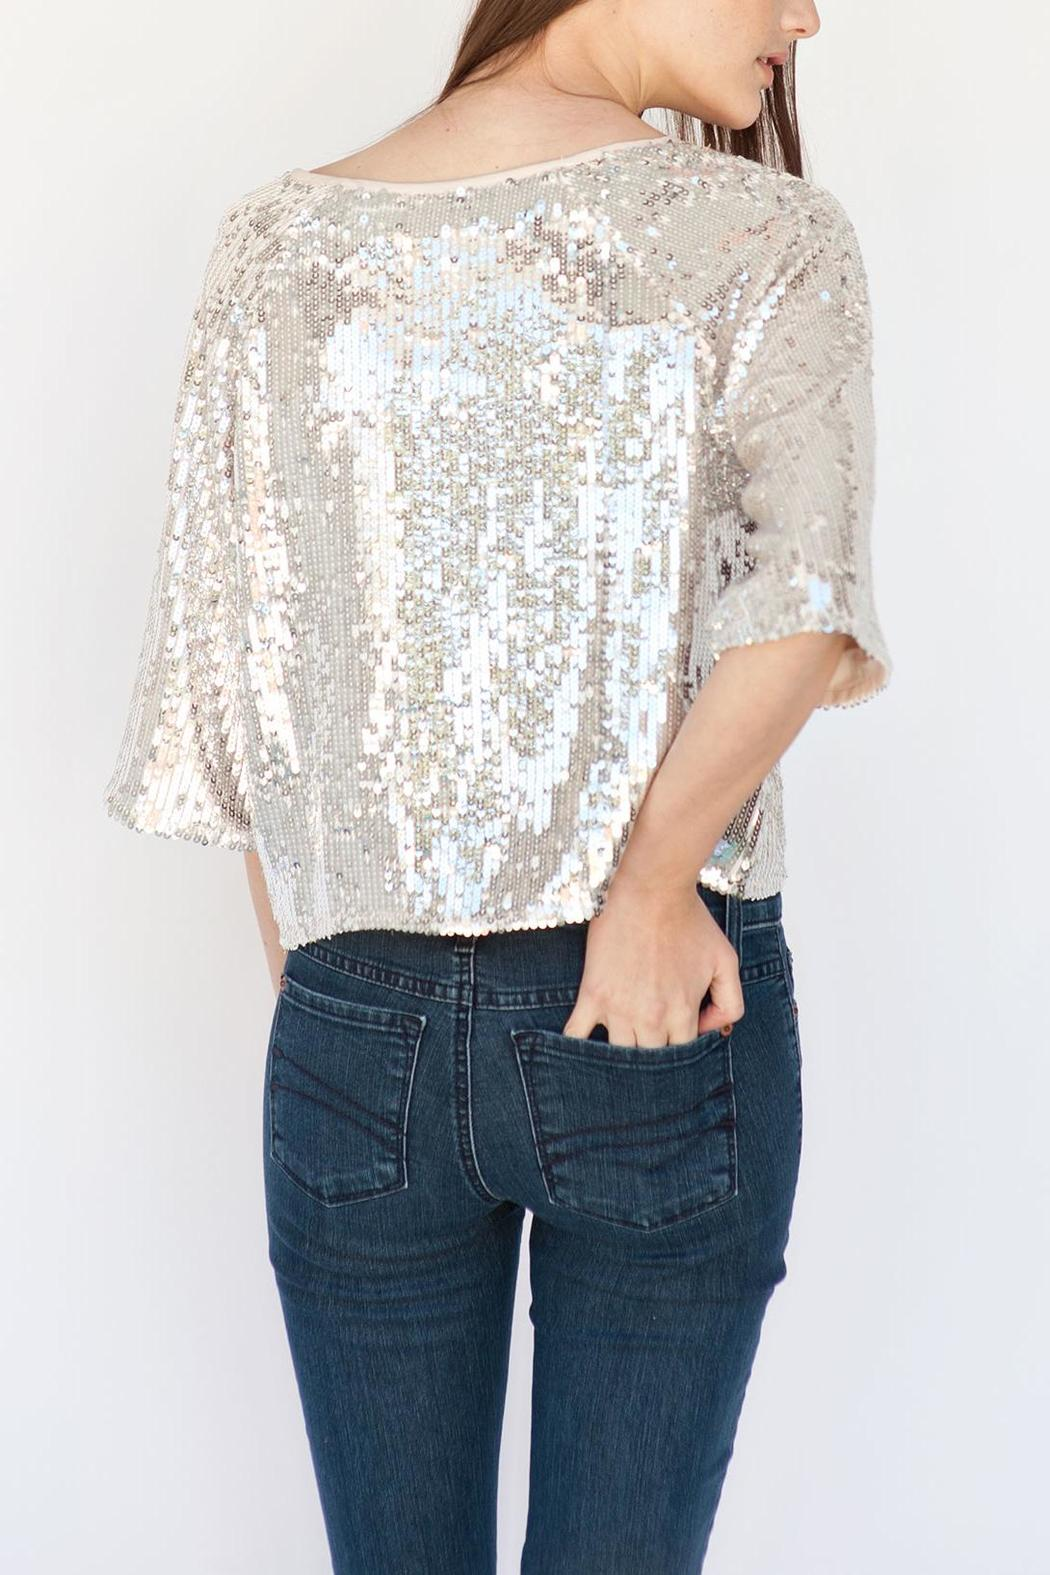 5211ca5443 Soaked in Luxury Silver Sequin Top from Calgary by Adorn Boutique ...